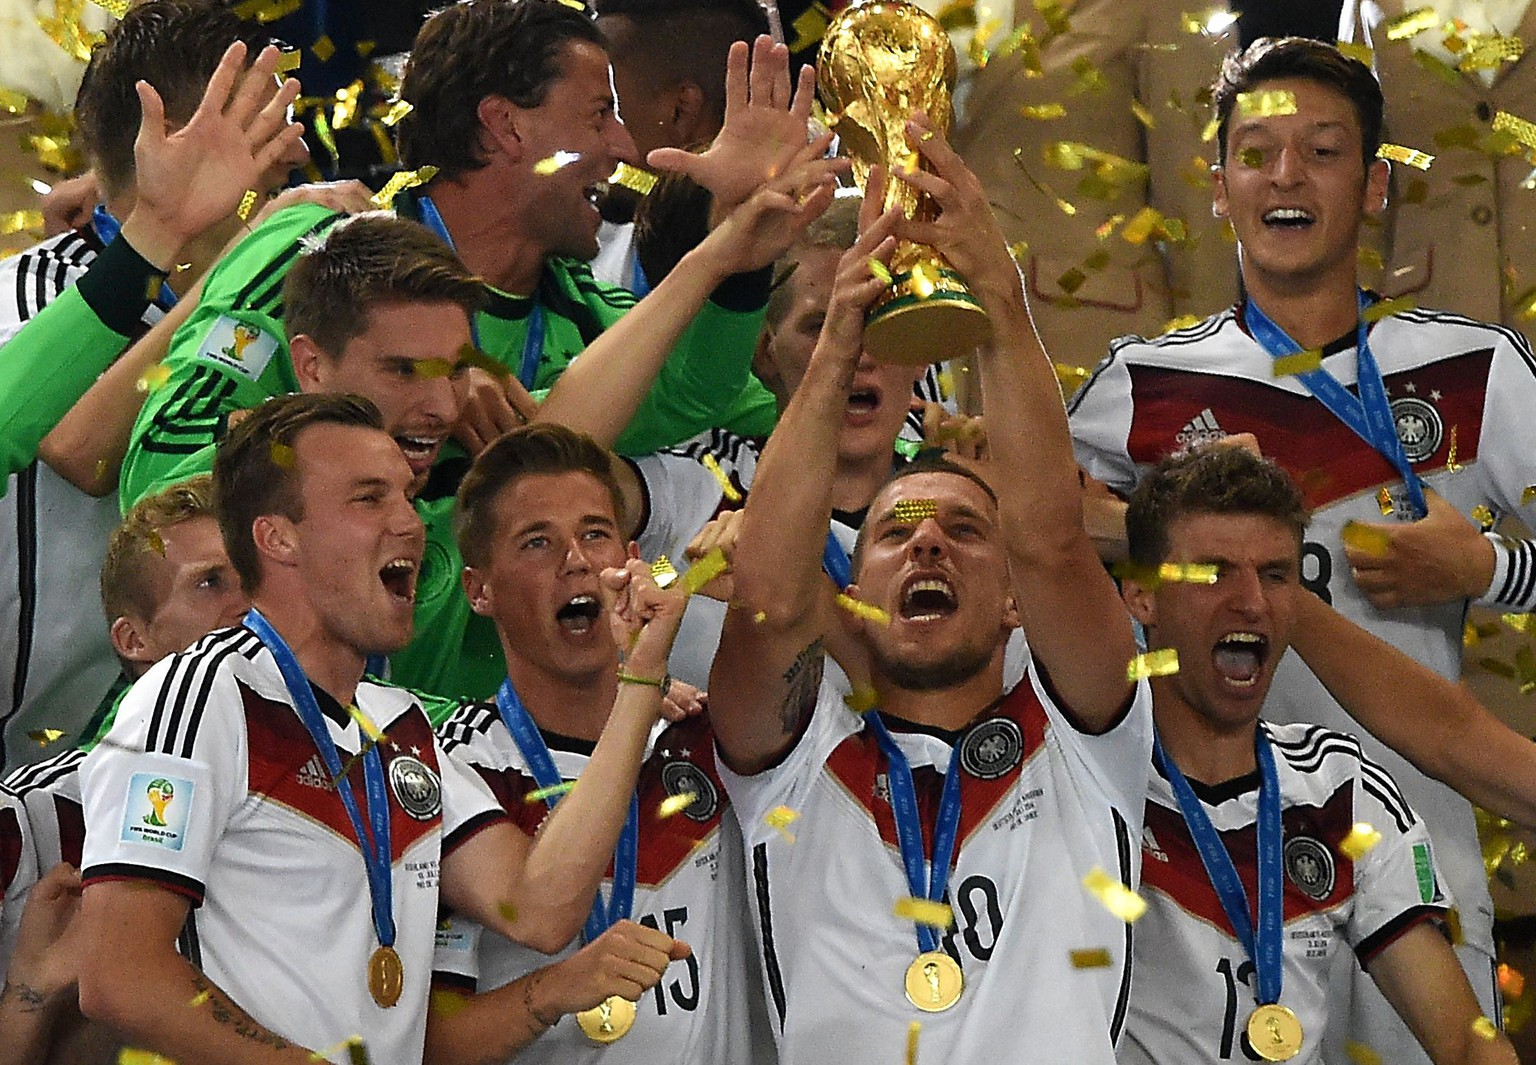 Germany's forward Lukas Podolski (front R) and team-mates celebrate with the World Cup trophy after they won the 2014 FIFA World Cup final football match between Germany and Argentina 1-0 following extra-time at the Maracana Stadium in Rio de Janeiro, Brazil, on July 13, 2014.         AFP PHOTO / PEDRO UGARTE